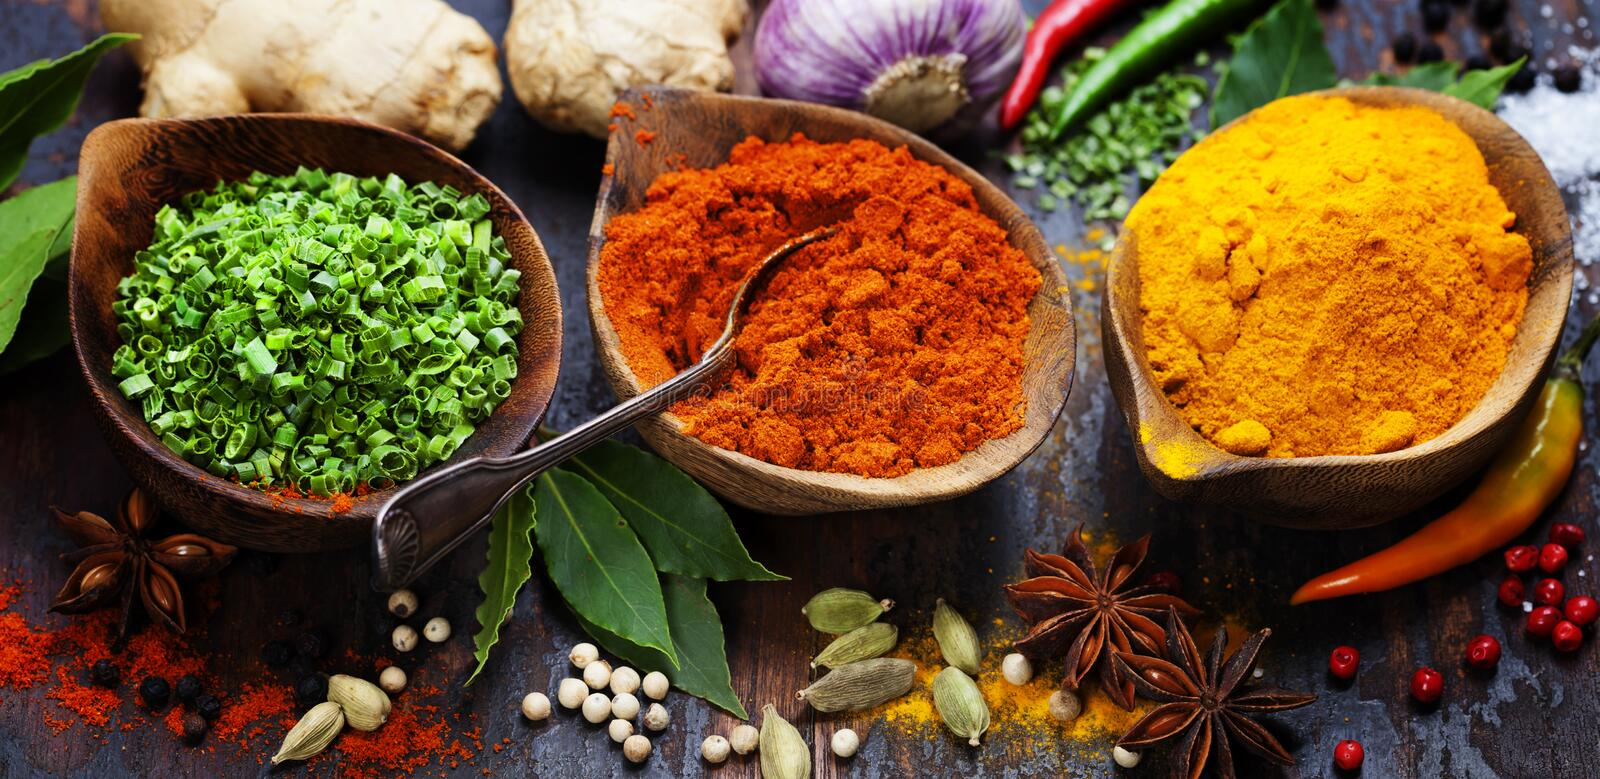 Spices and herbs royalty free stock photos